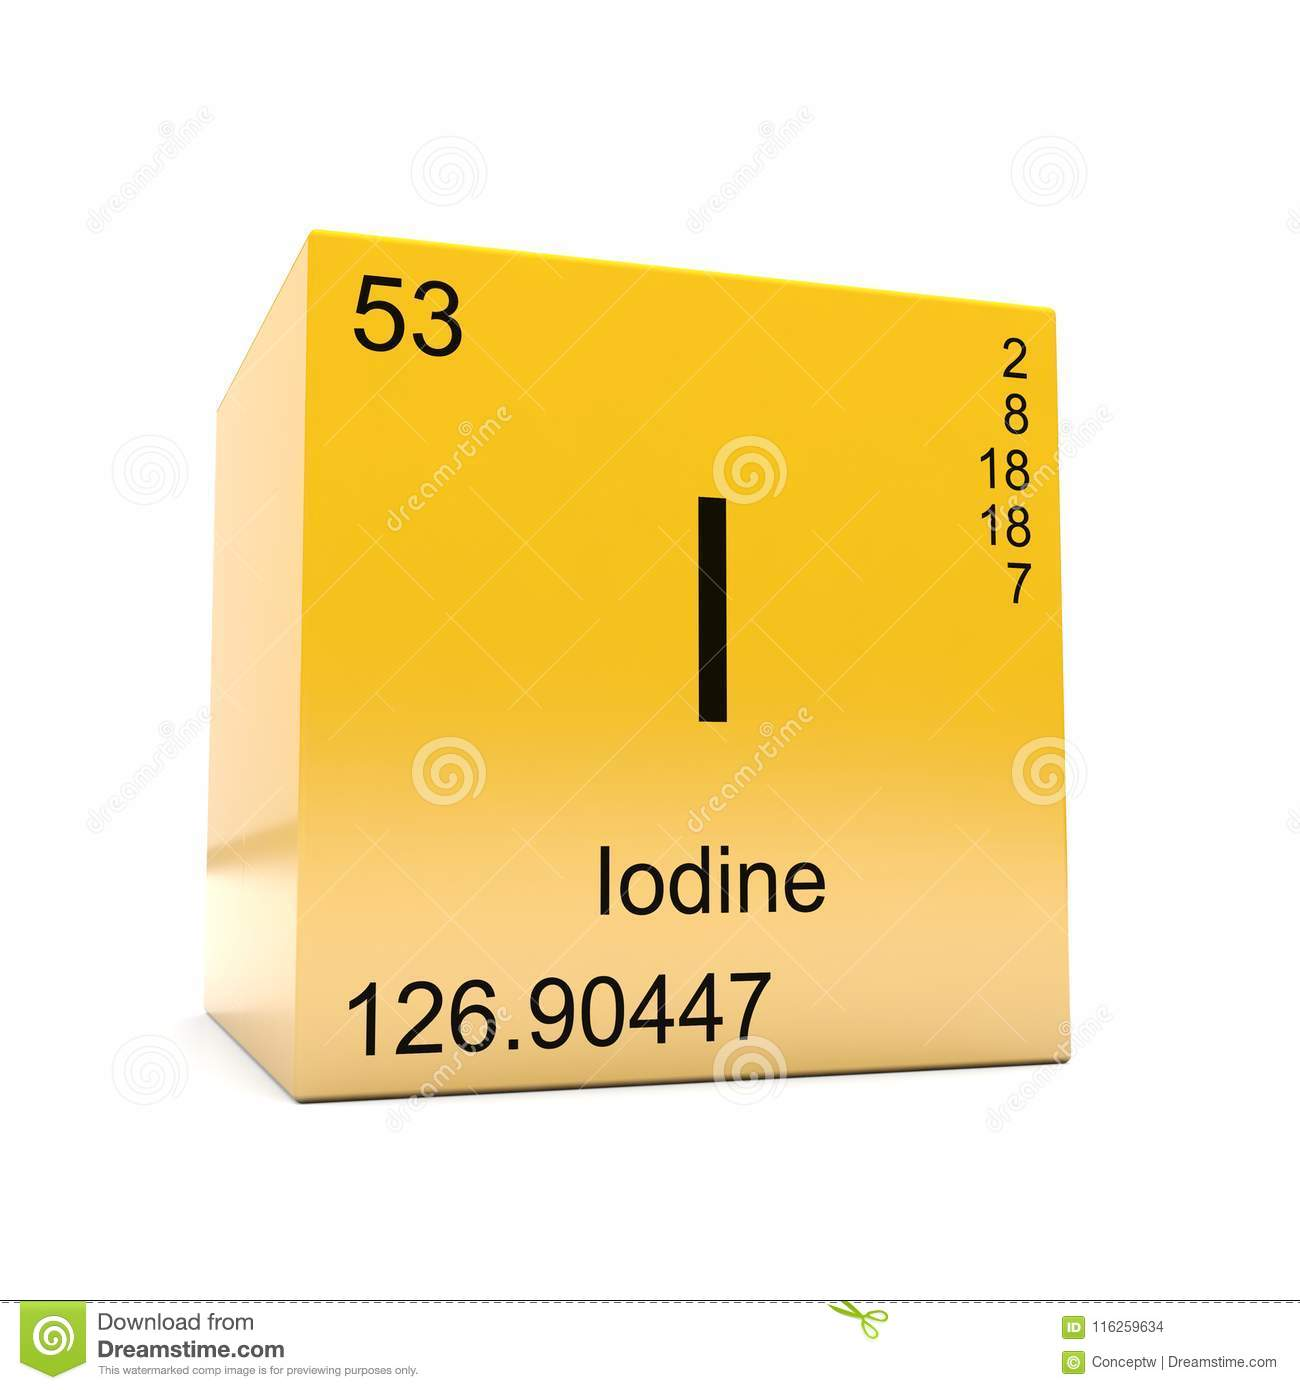 Iodine Chemical Element Symbol From Periodic Table Stock